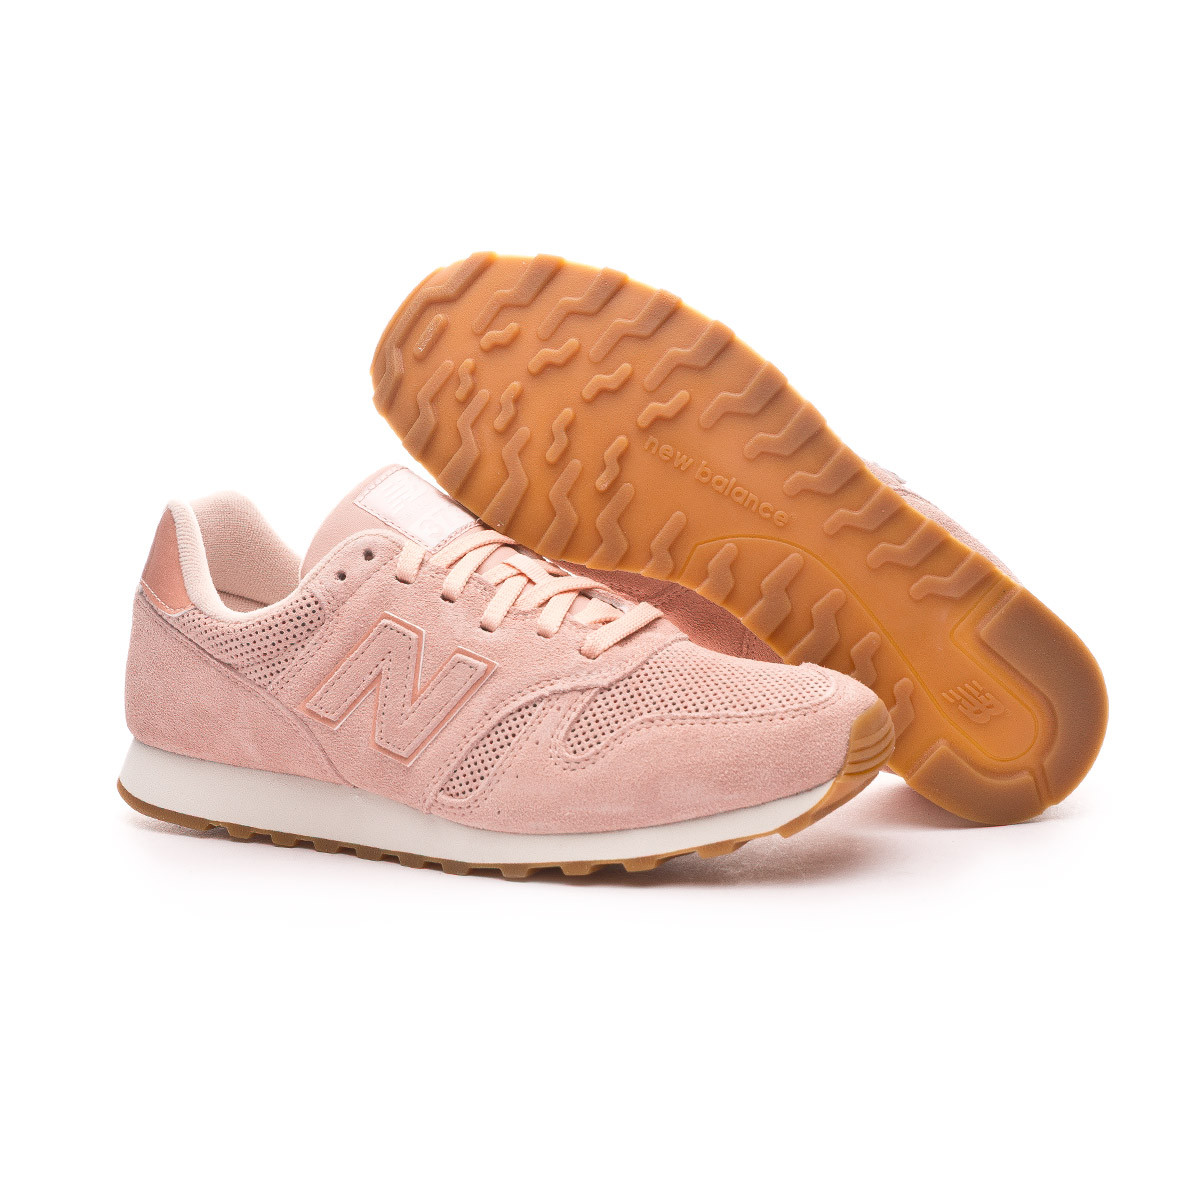 New Balance 373 v2 Classic Mujer Trainers